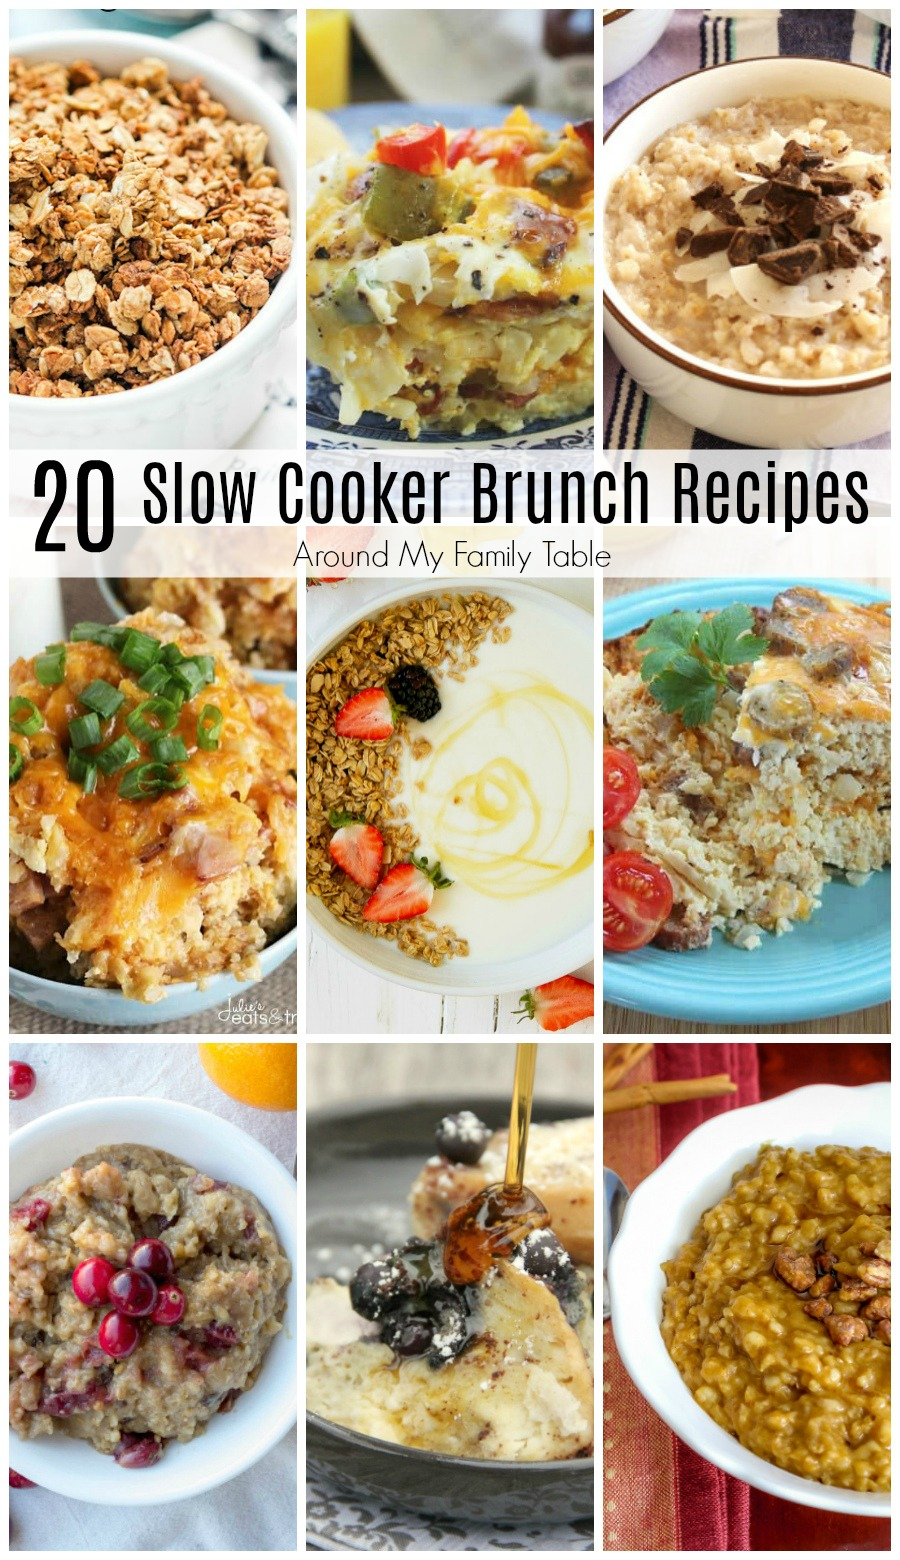 Slow cooker brunch recipes are the perfect thing to make for a weekend brunch! These crock pot recipes are easy to prep and they're absolutely delicious too! via @slingmama